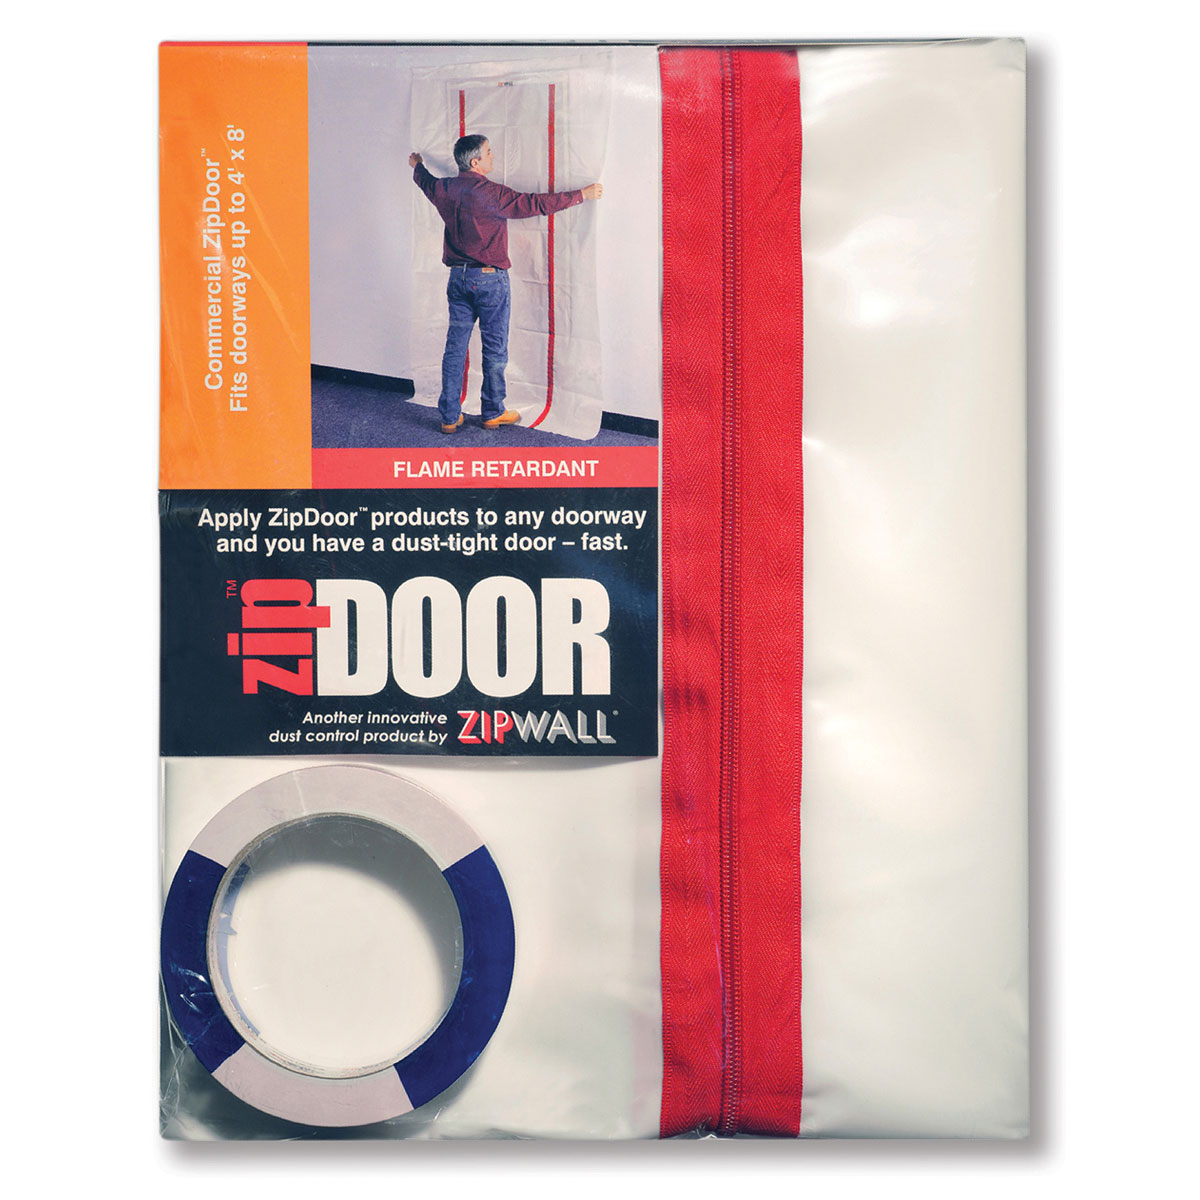 ZipWall ZDC ZipDoor Kit Flame Retardant For Commercial Doorways - 4' x 8'